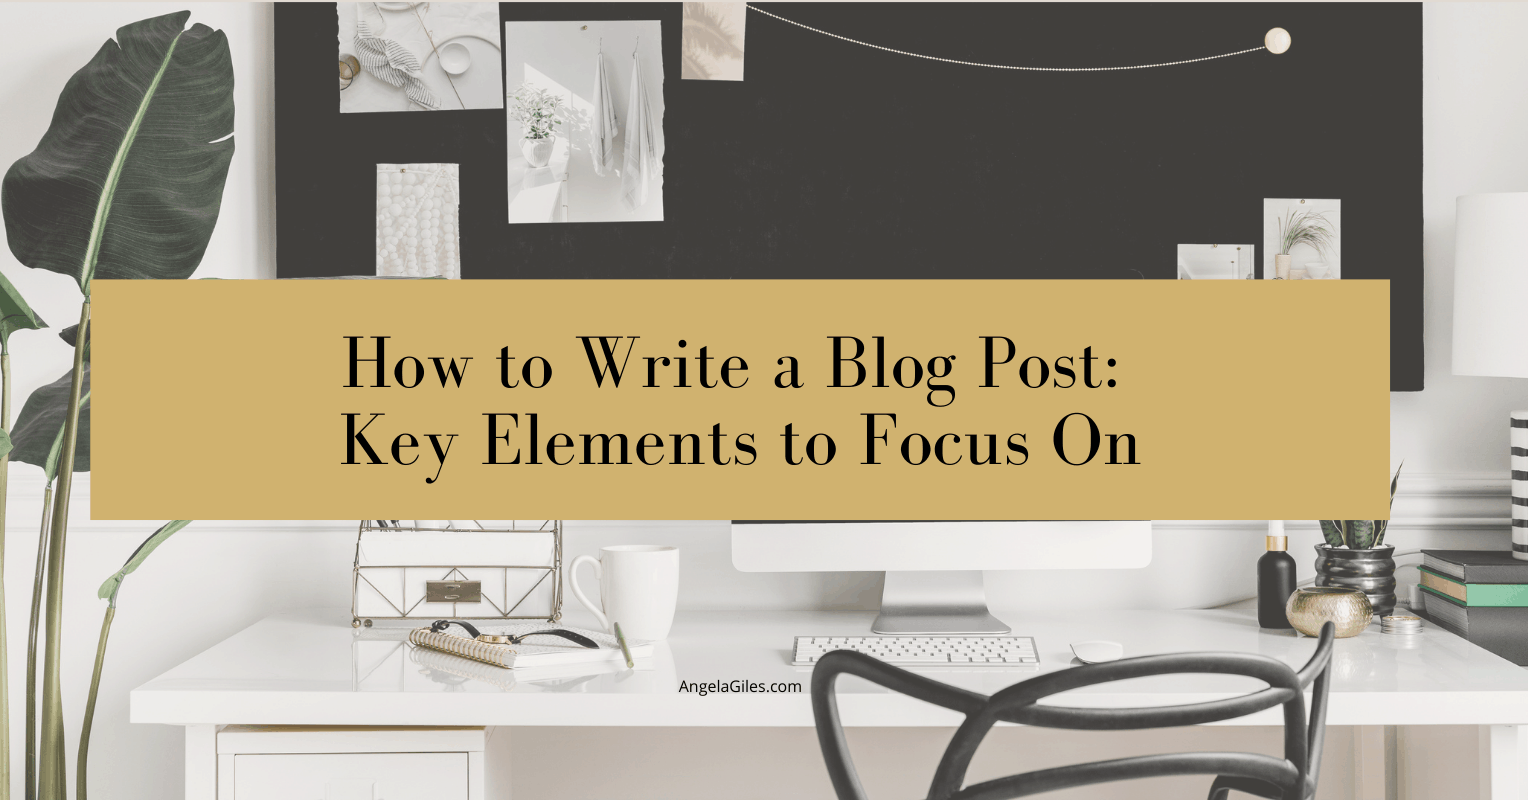 How to Write a Blog Post: Key Elements to Focus On